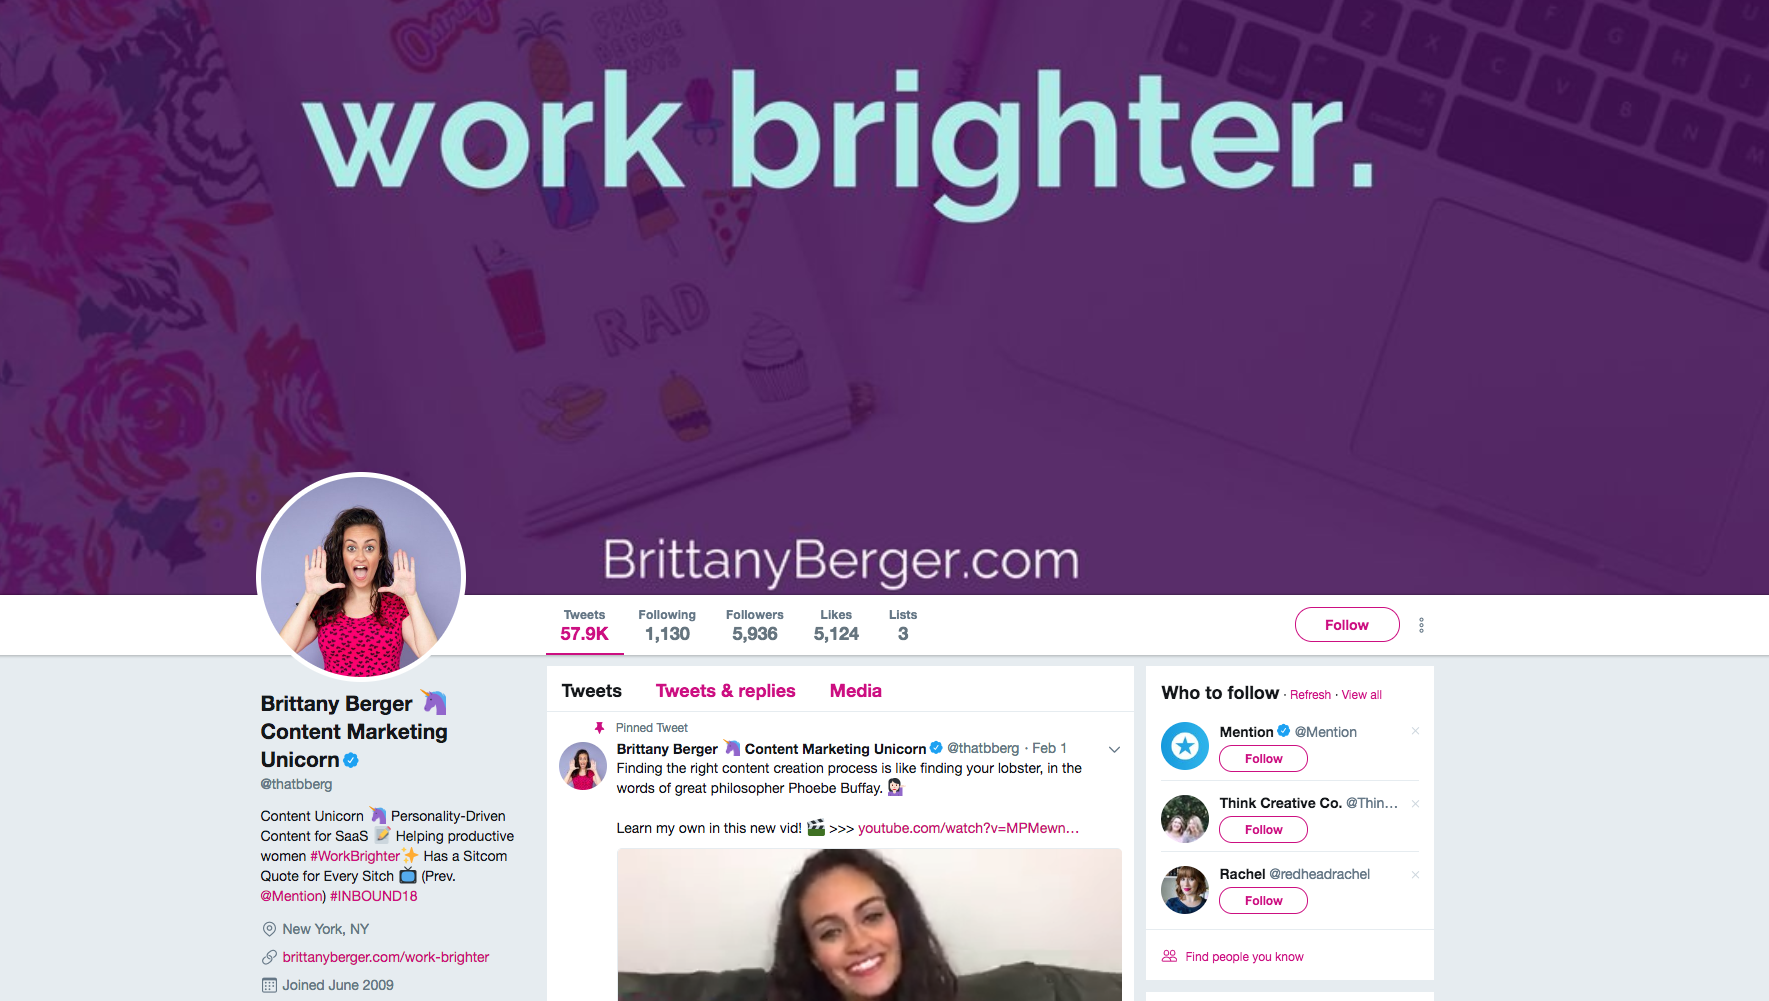 Brittany Berger top social media marketing influencers